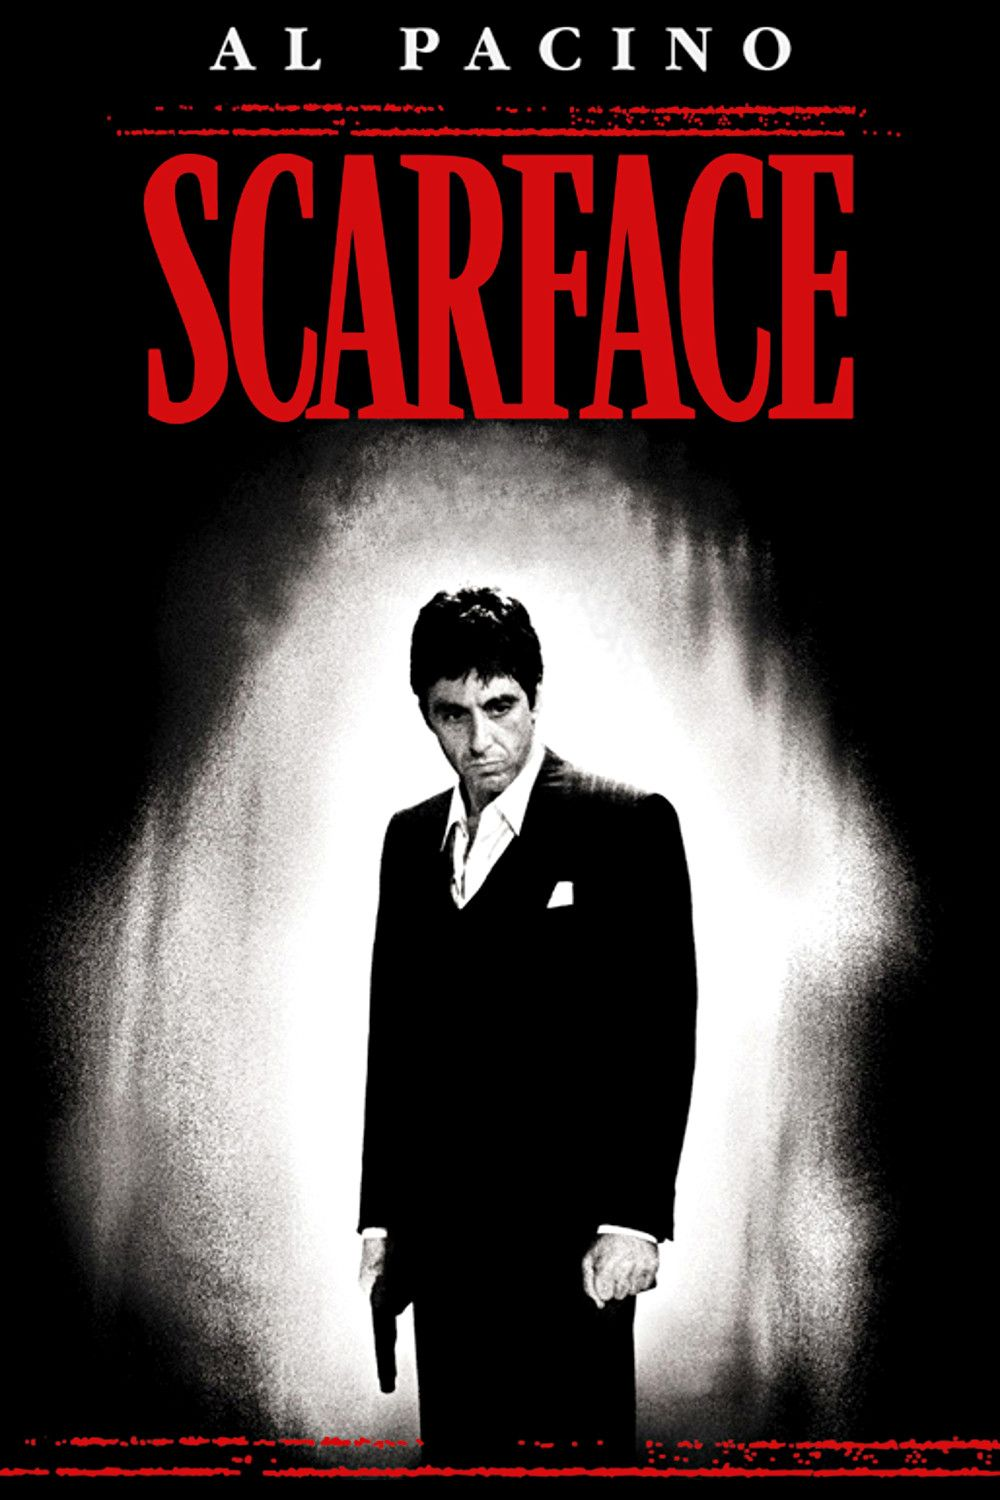 Best Movie Quotes Ever Pt 2 Scarface Movie Scarface Poster Good Movies